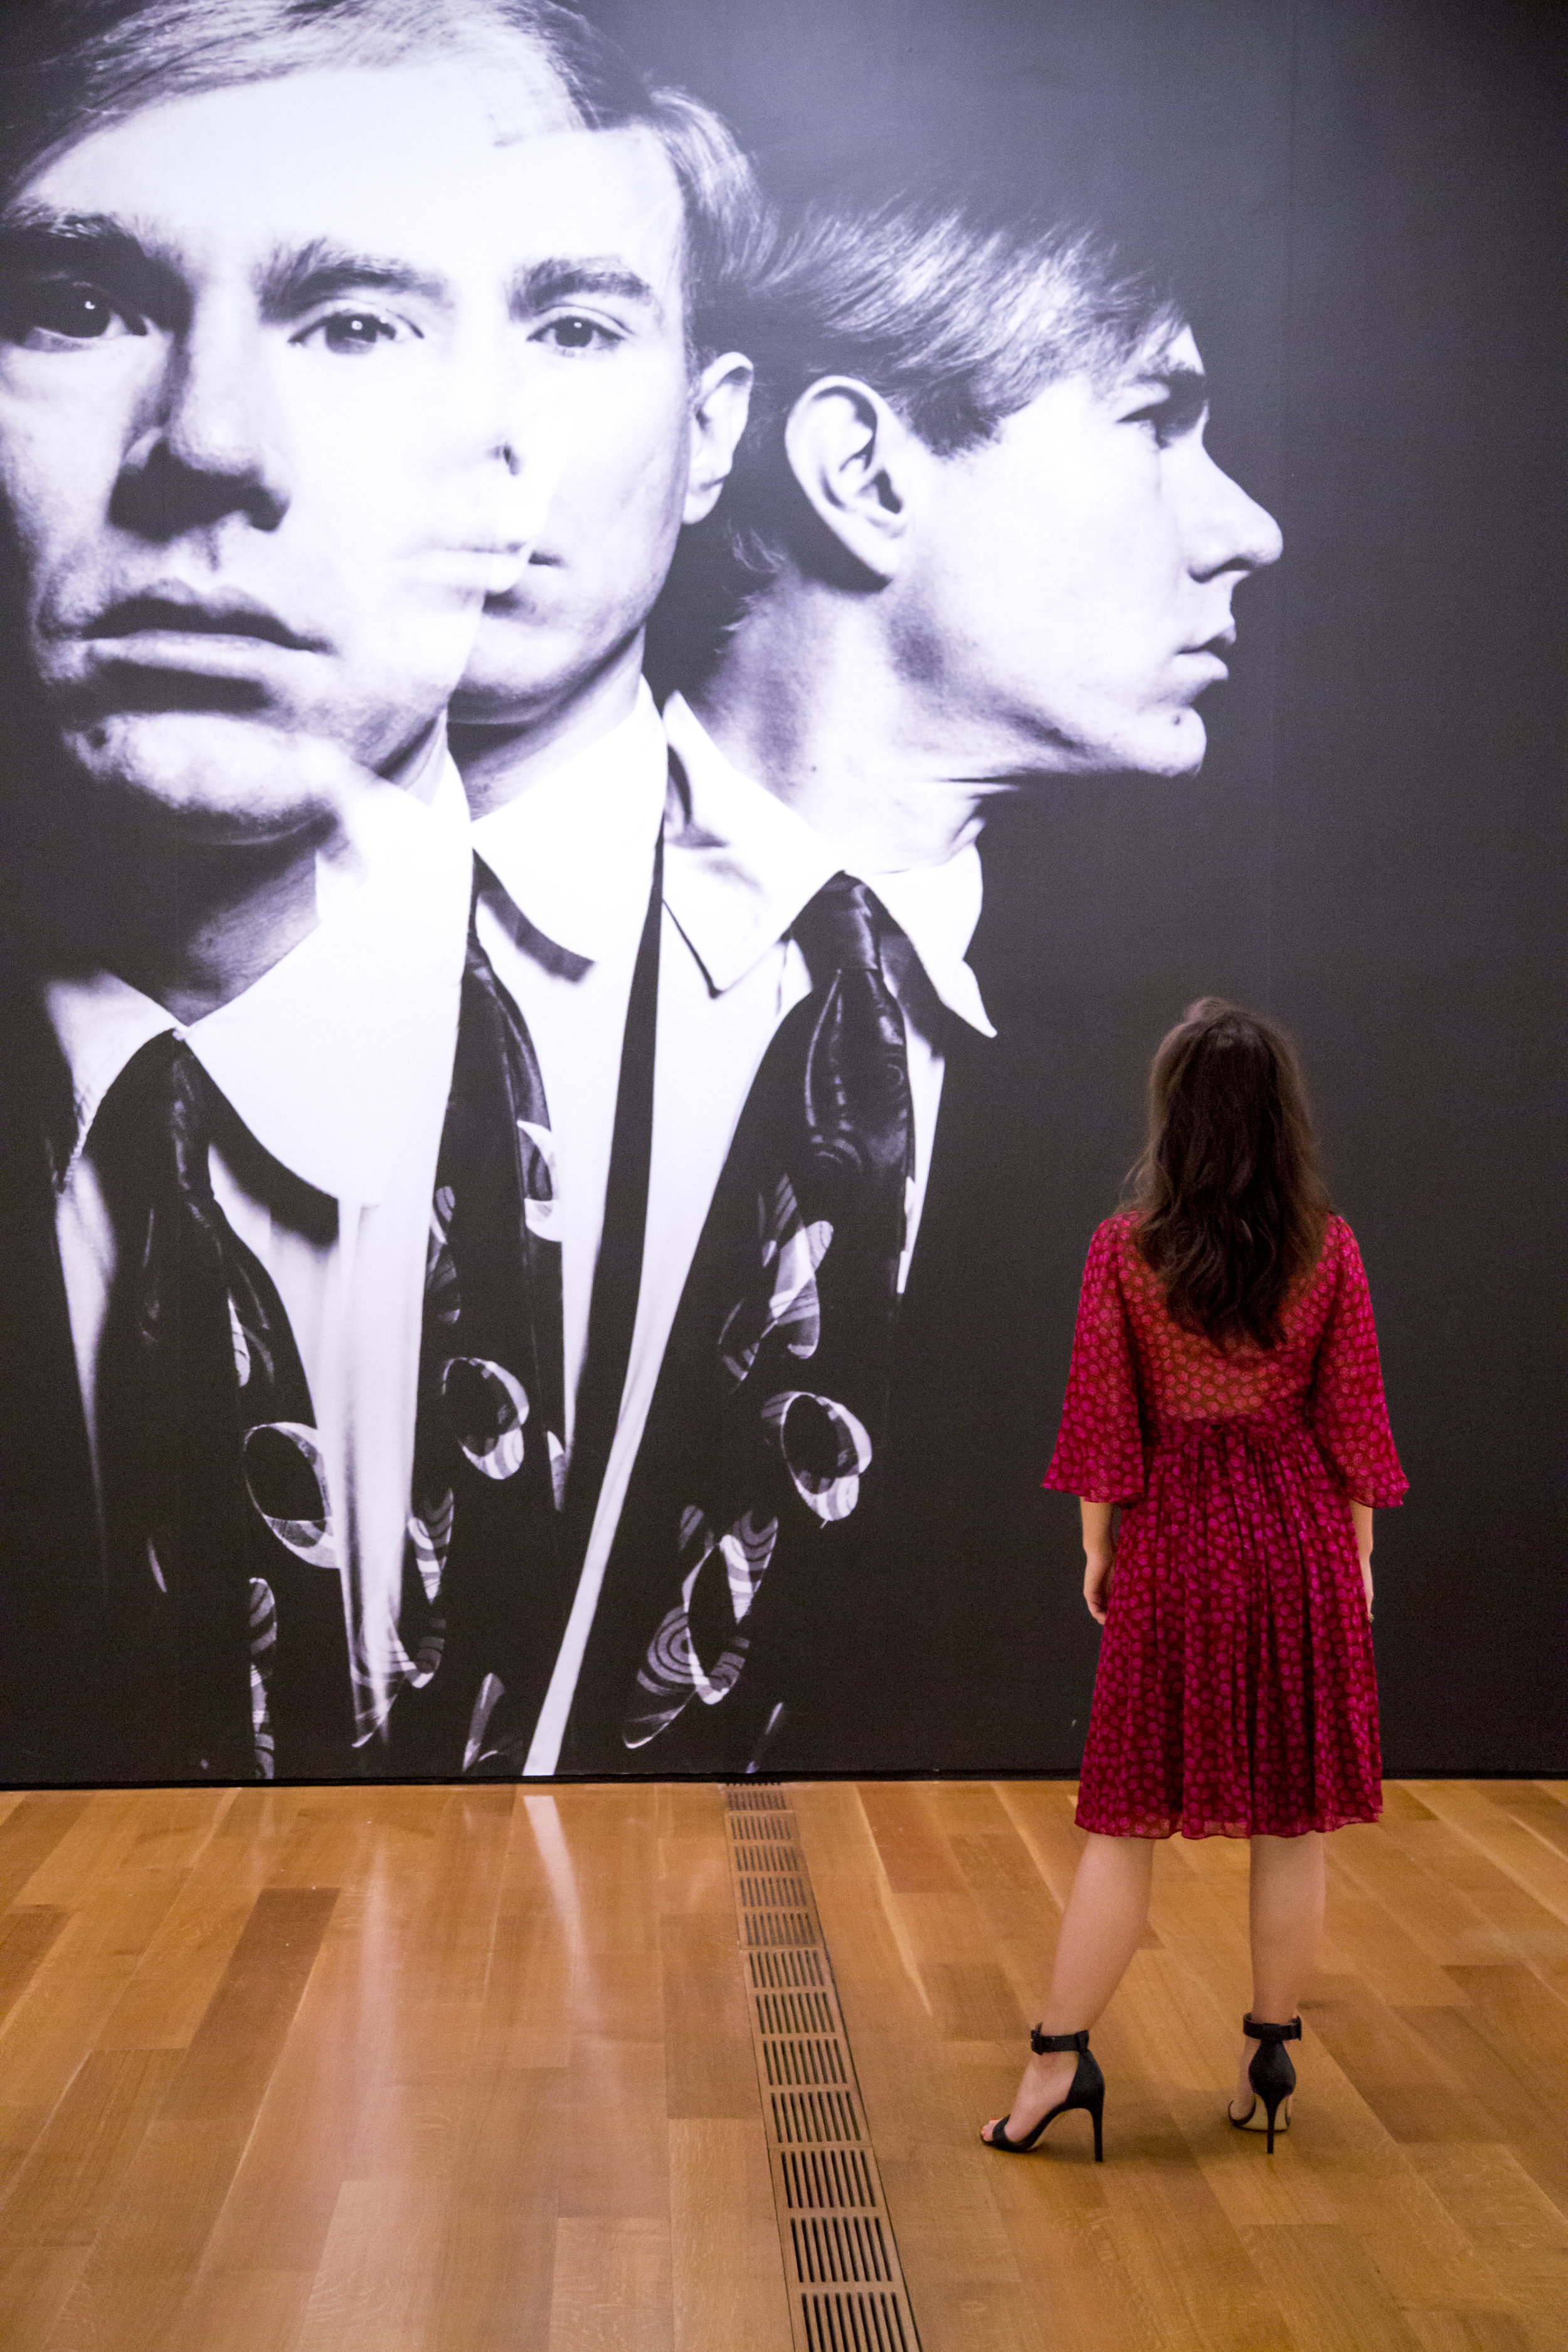 All photos for this post were taken at the High Museum of Art in Atlanta, GA during the  Andy Warhol: Prints  exhibition (on view through September 3!)